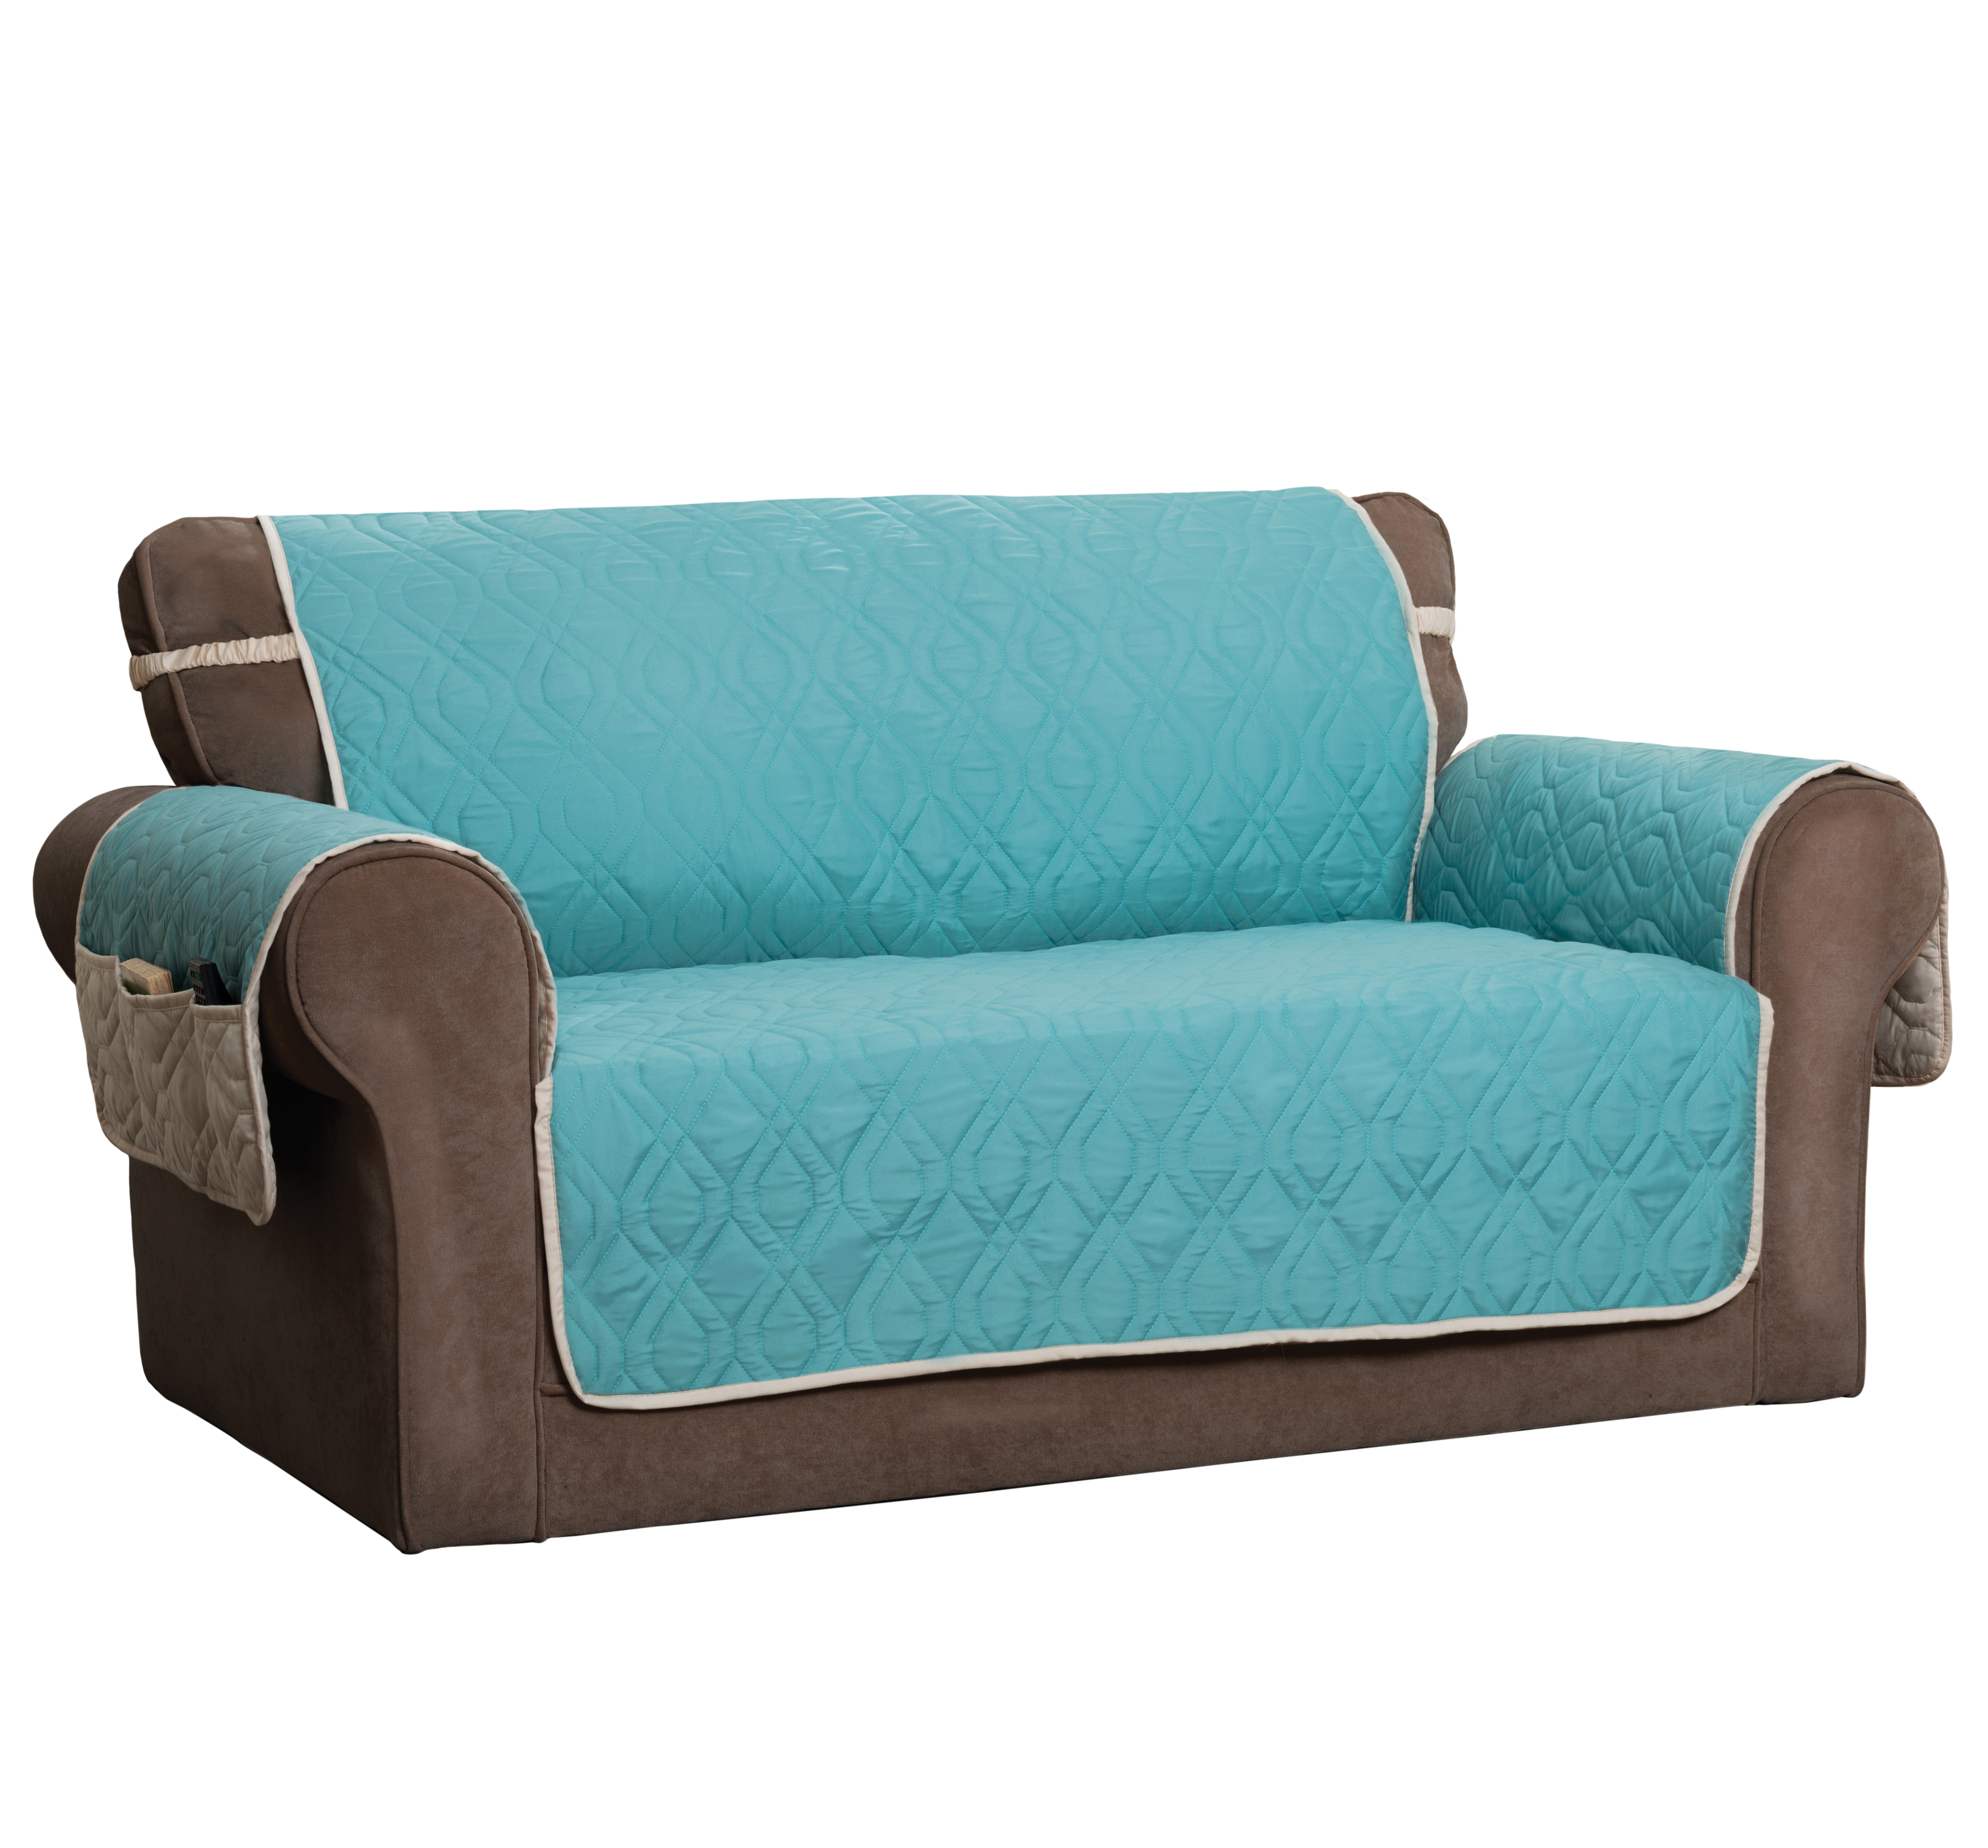 Innovative Textile Solutions Aqua Blue 5 Star Reversible Waterproof Quilted Recliner Furniture Cover